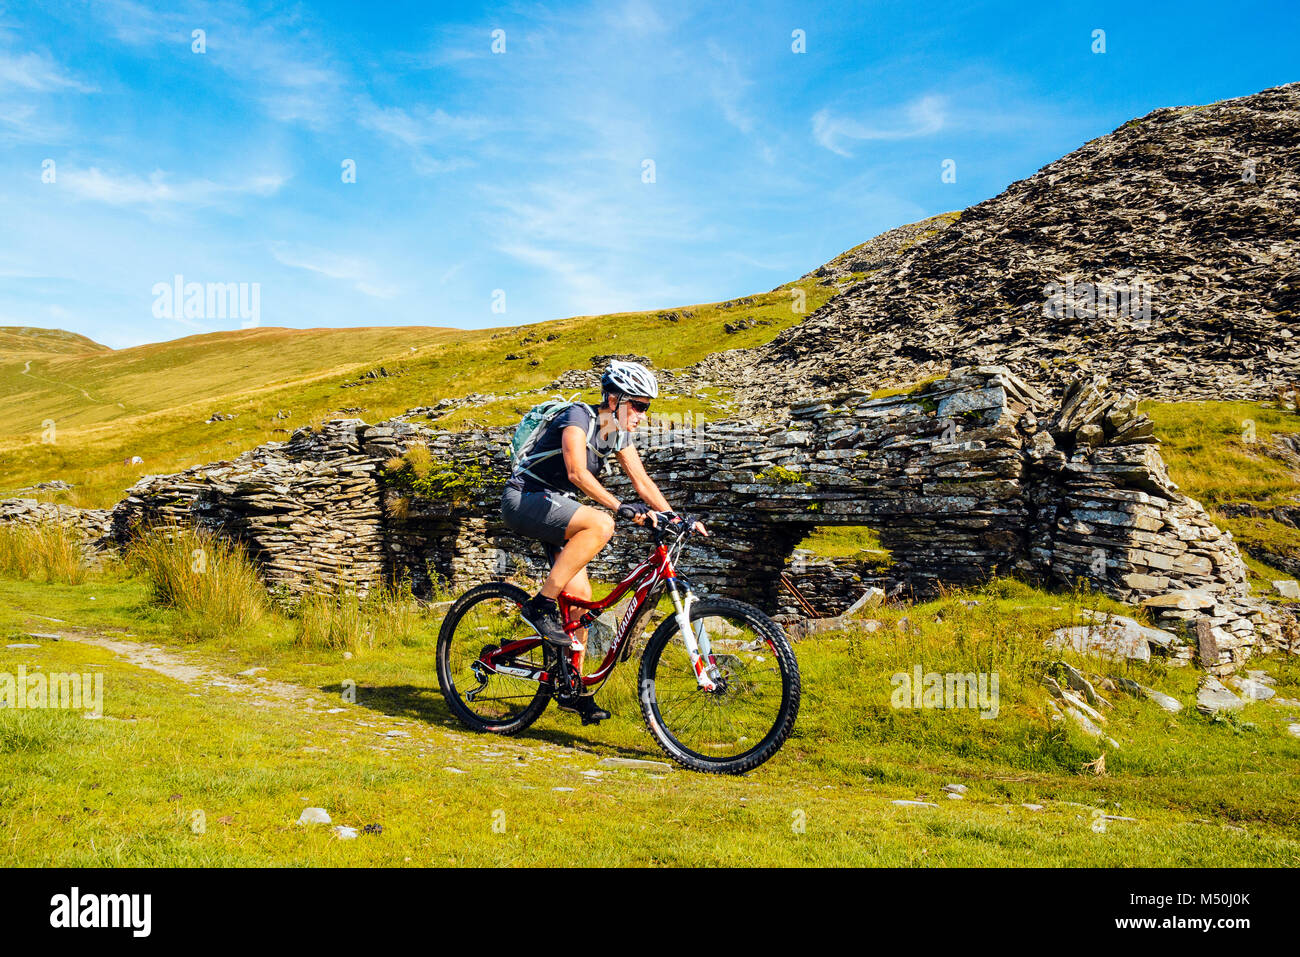 Female mountain biker passing quarry ruins at Walna Scar Quarries in the English Lake District - Stock Image